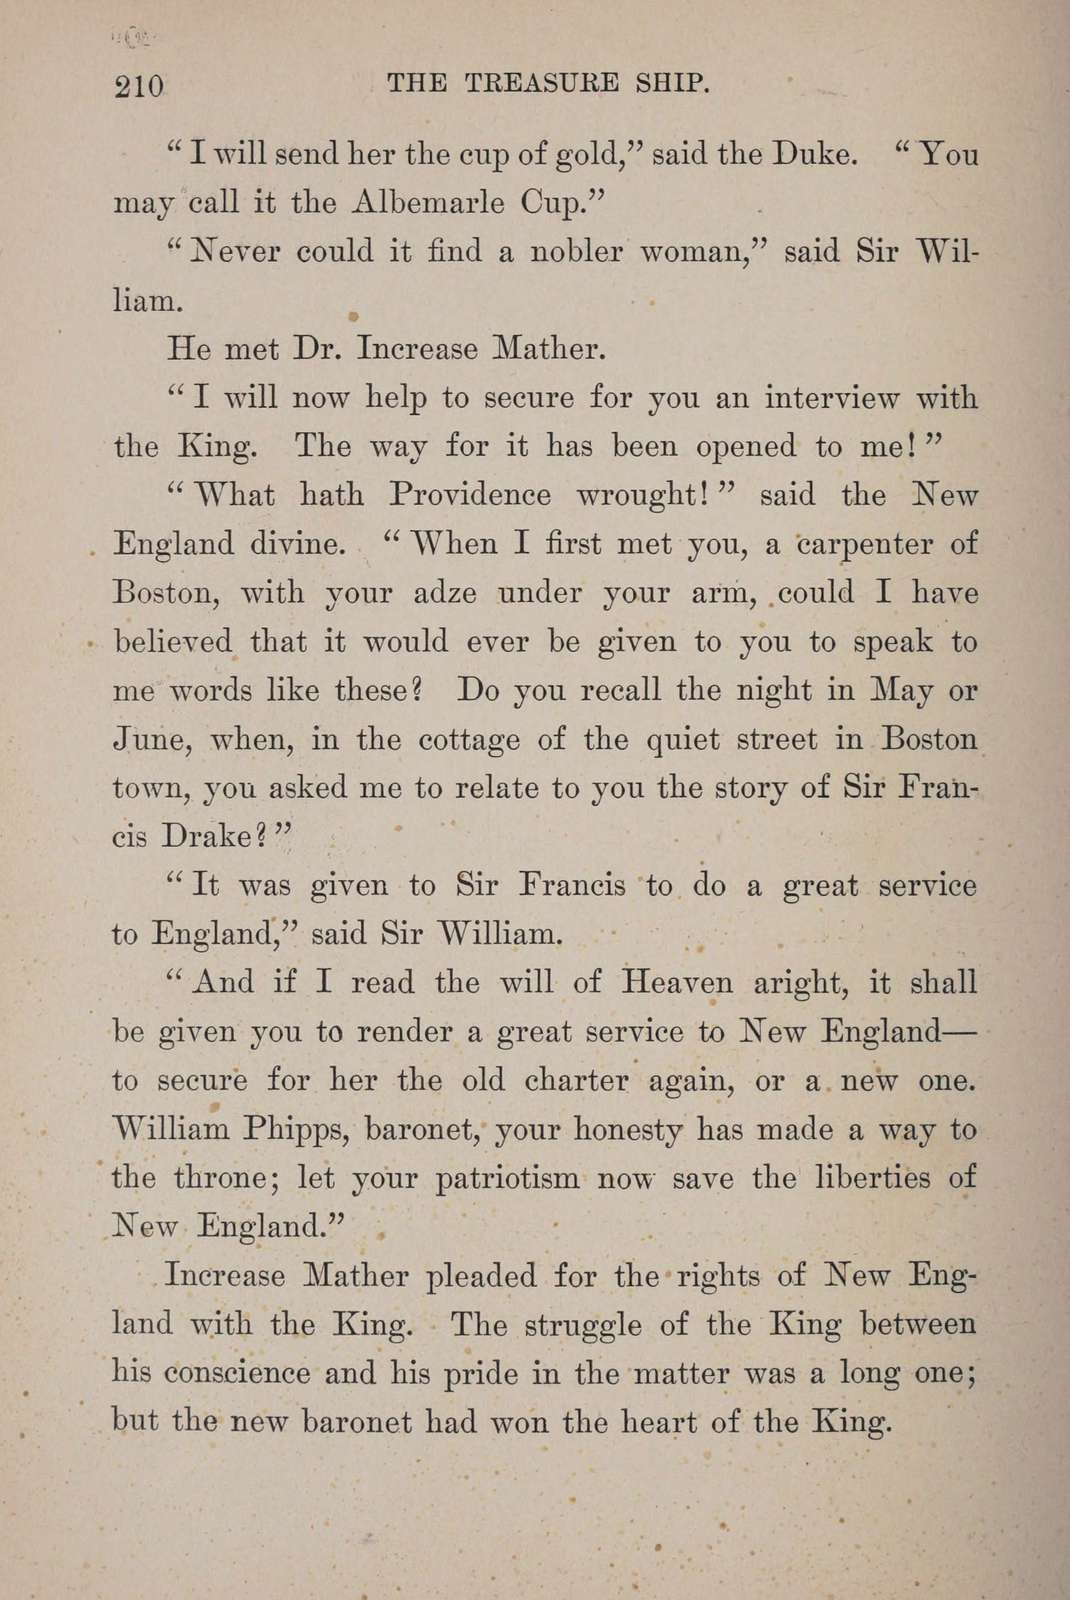 The treasure ship; a tale of Sir William Phipps, the regicides, and the inter charter period in Massachusetts